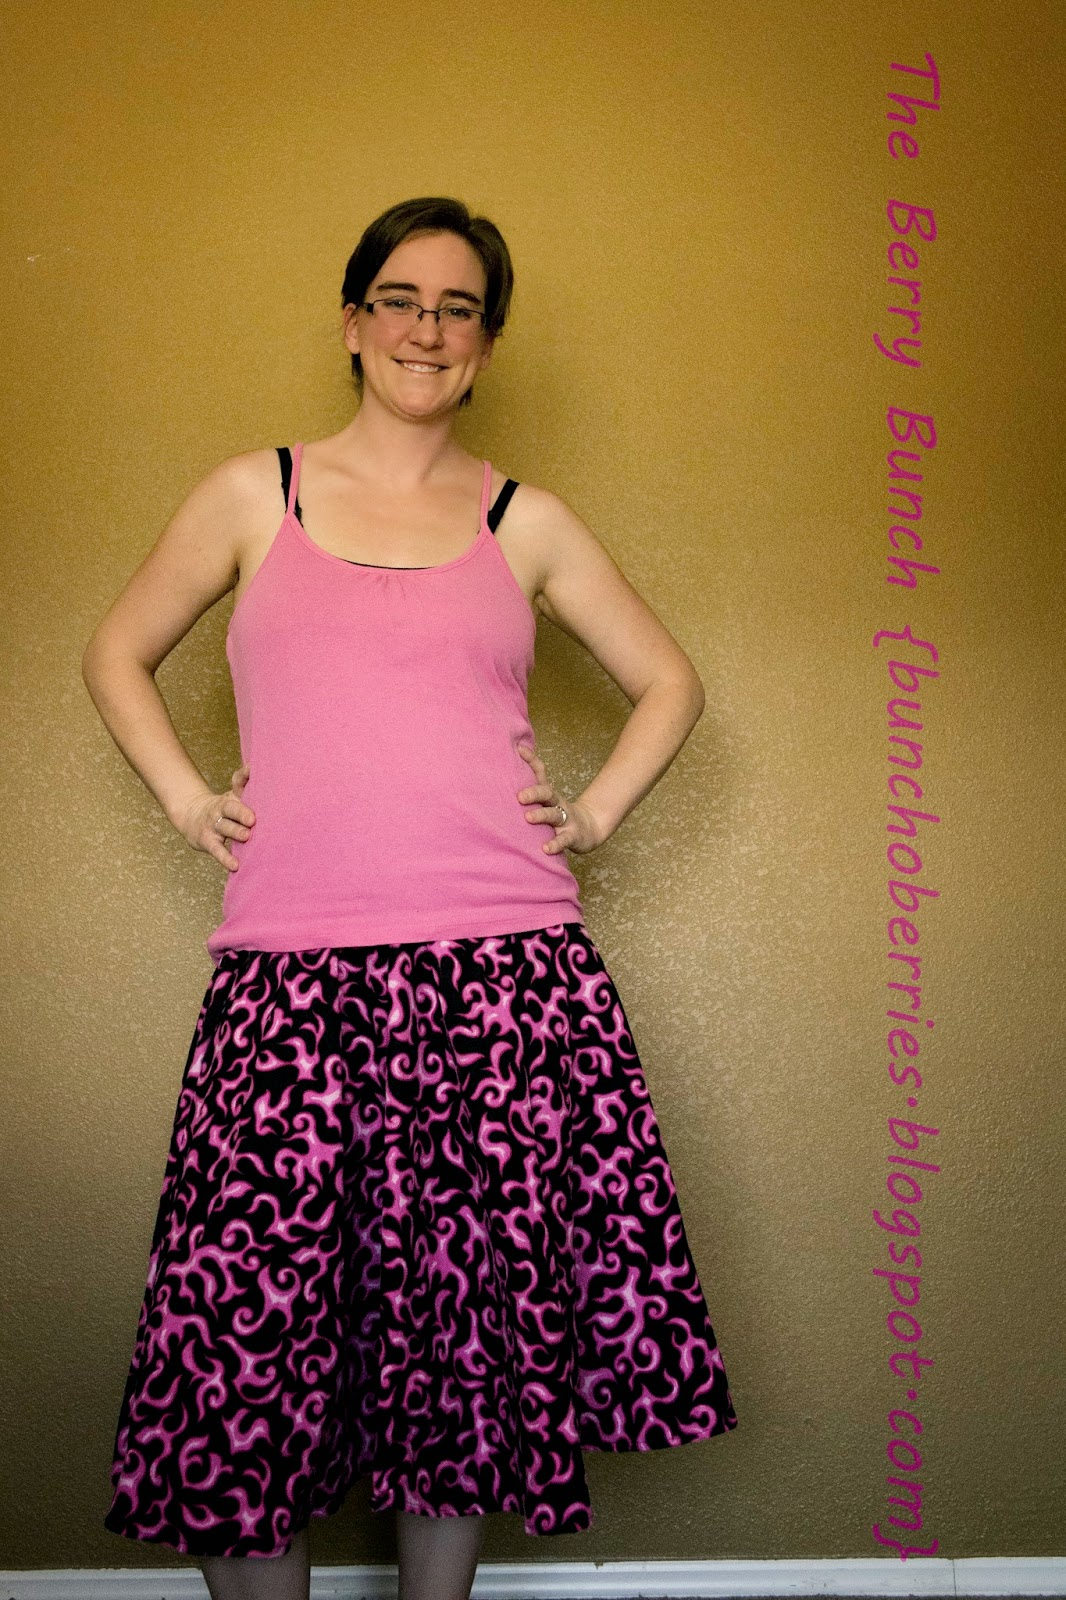 The Berry Bunch: Sew-a-bration of Womanhood: Circle Skirt